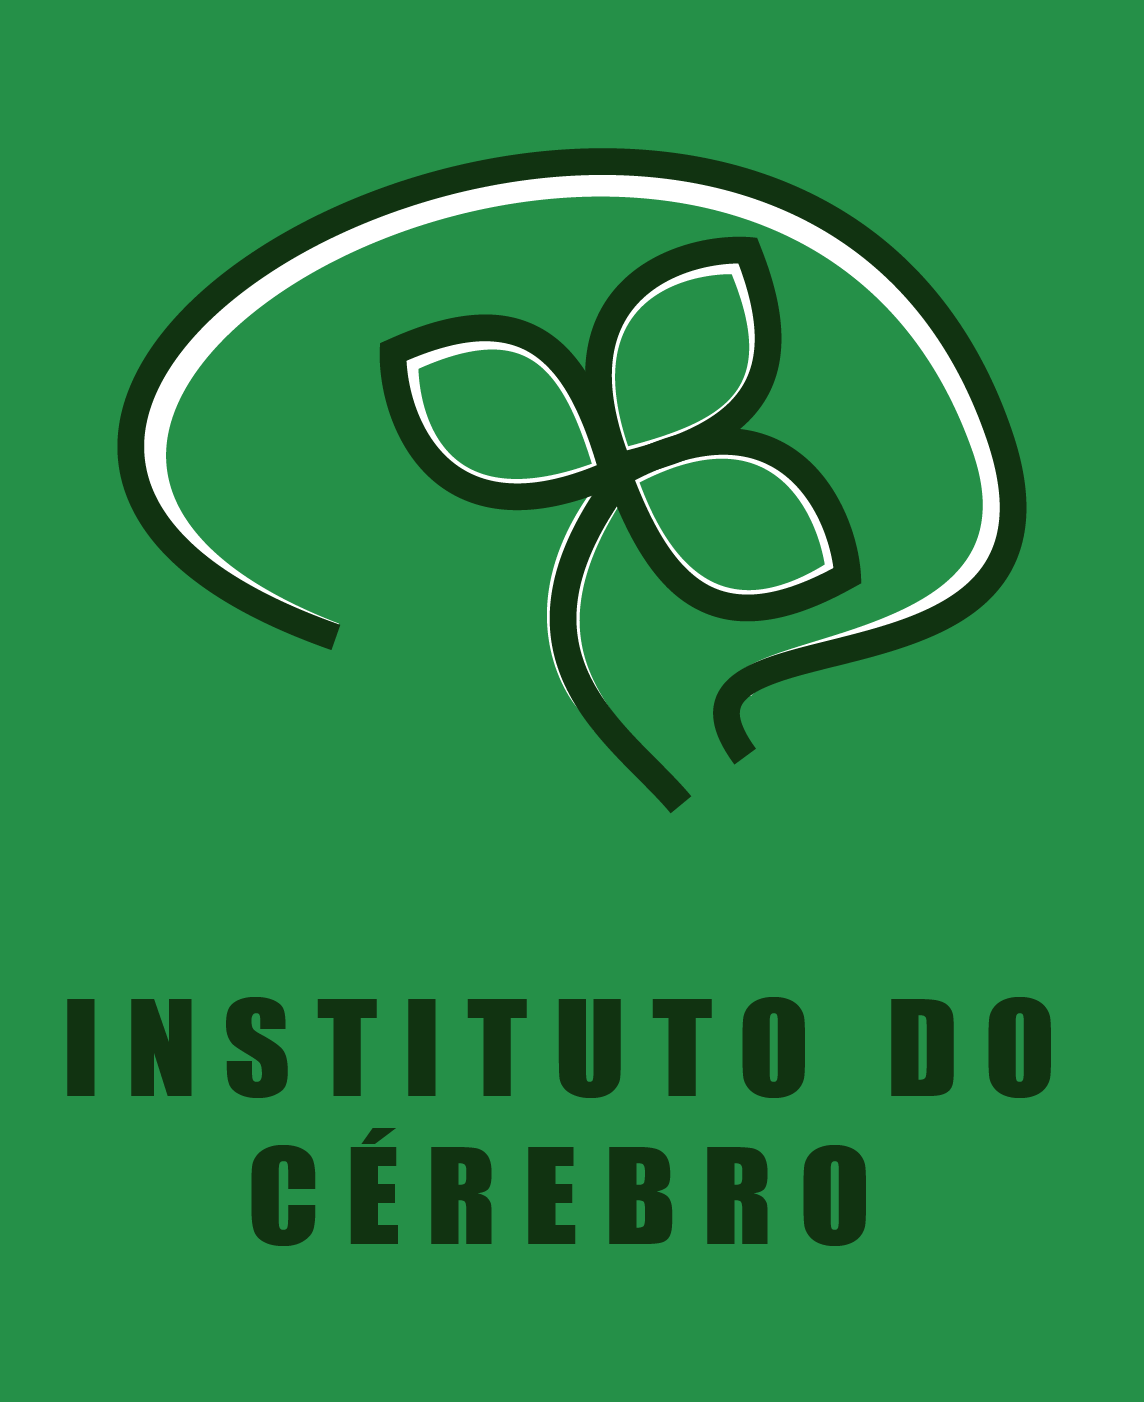 Instituto do Cérebro